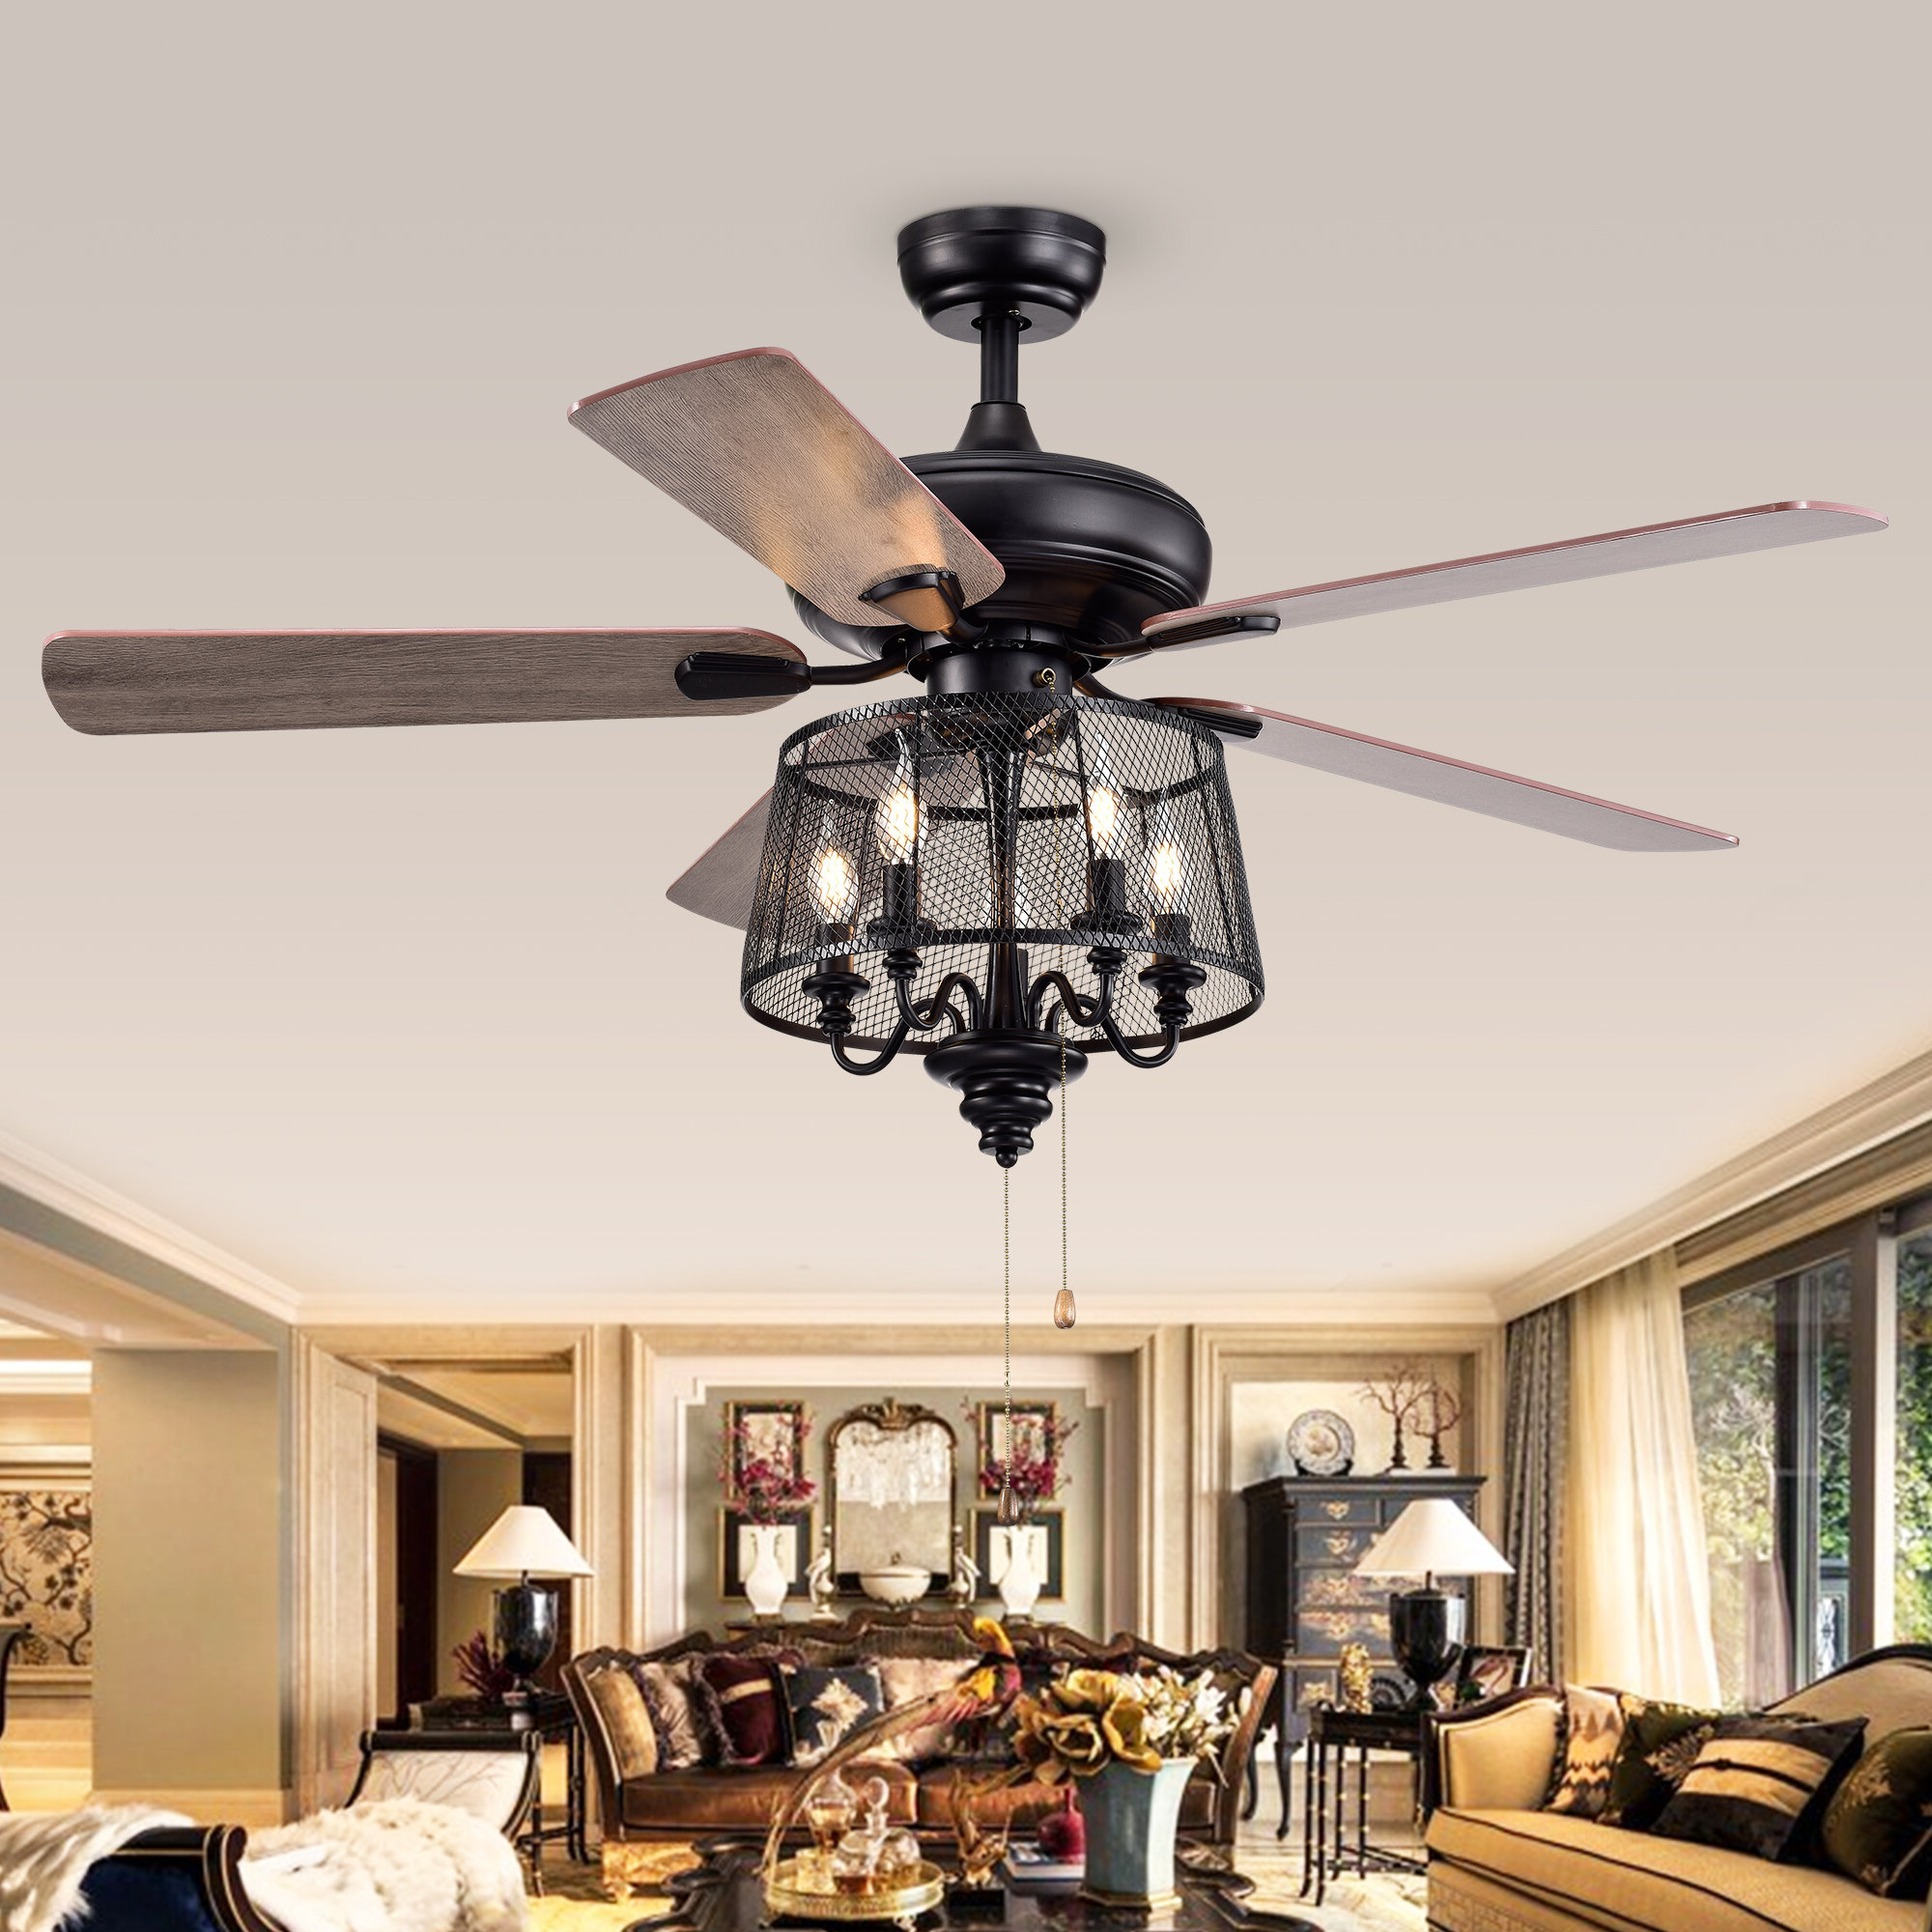 2019 Croteau 5 Blade Ceiling Fan, Light Kit Included Regarding Njie Caged Crystal 5 Blade Ceiling Fans (Gallery 10 of 20)